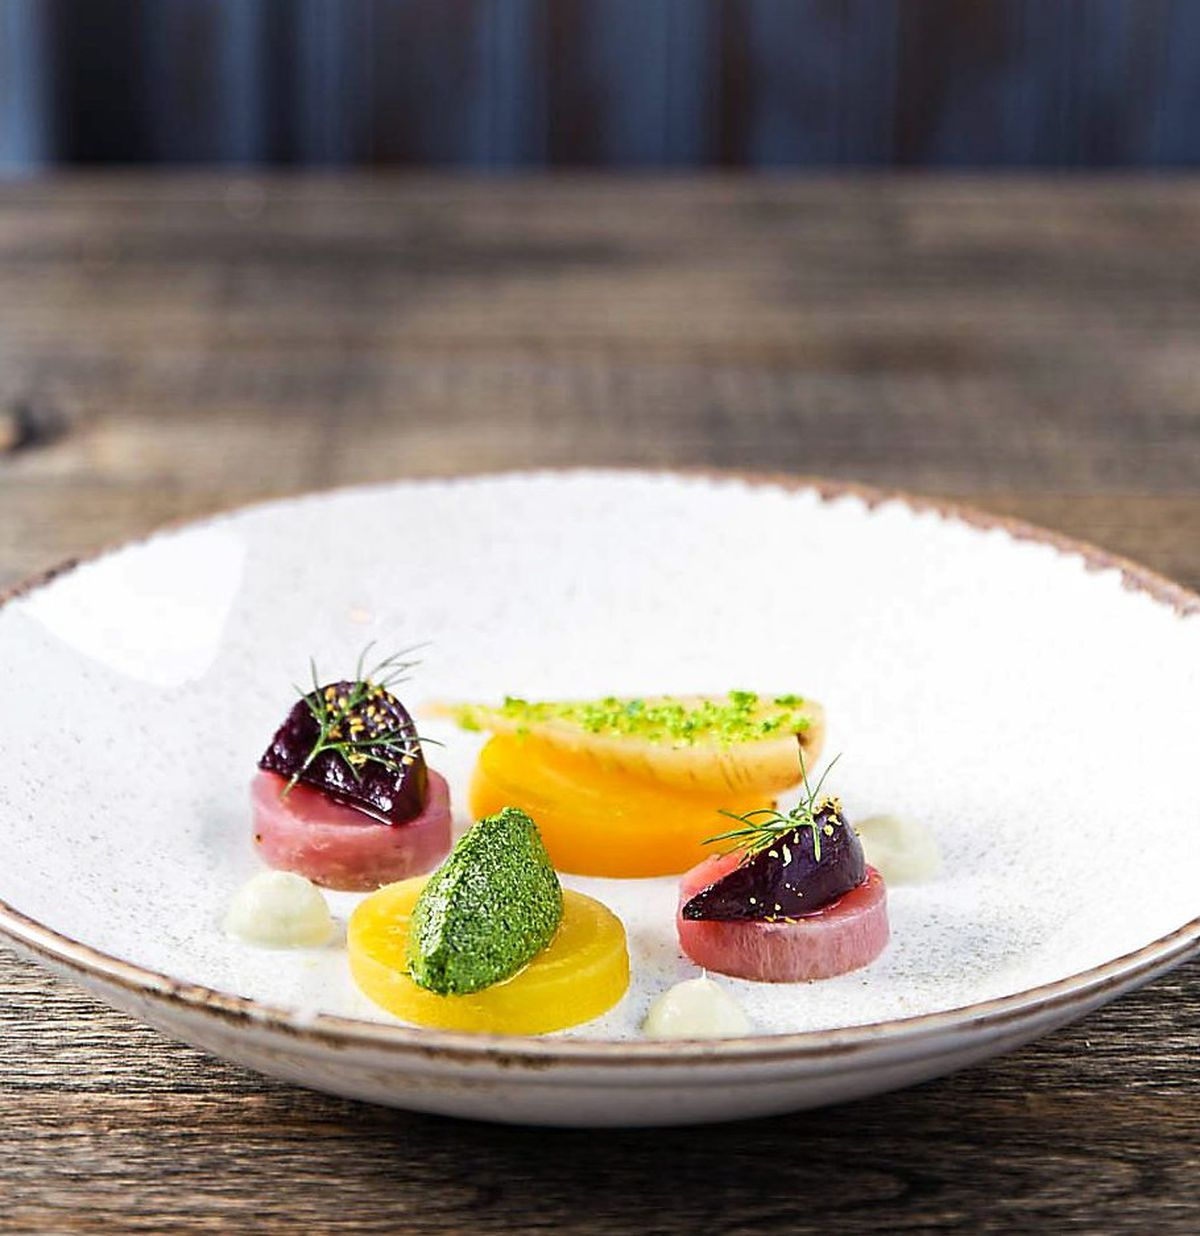 Hard to beet – the beetroot and carrot starter